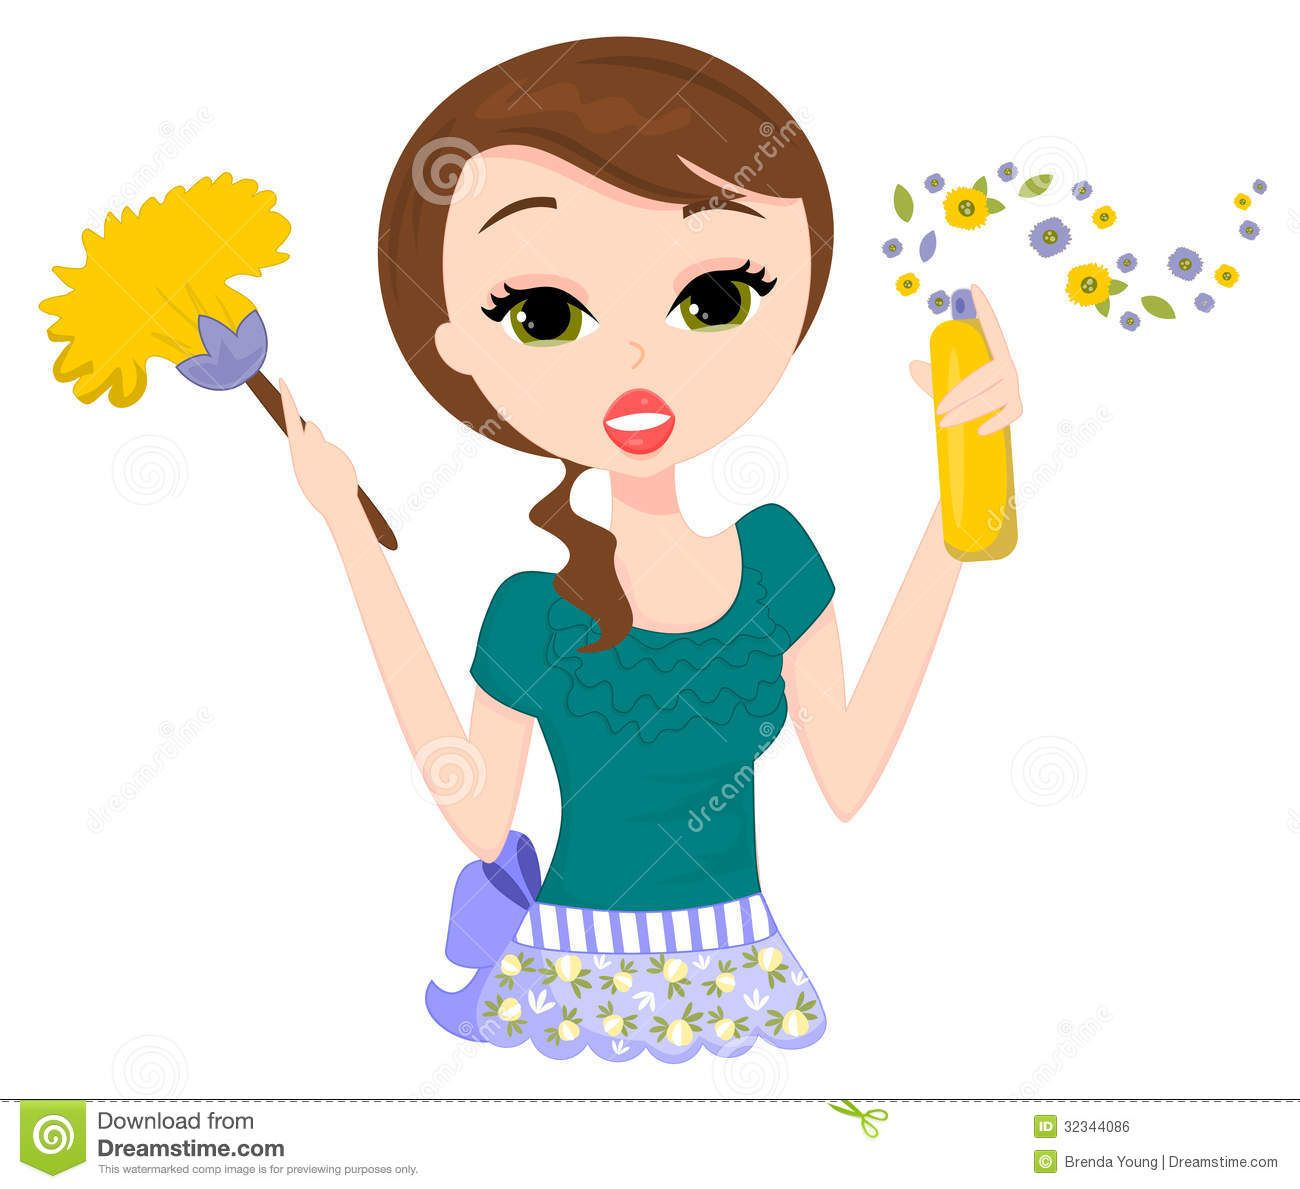 s cleaning lady. Housekeeping clipart all purpose clean